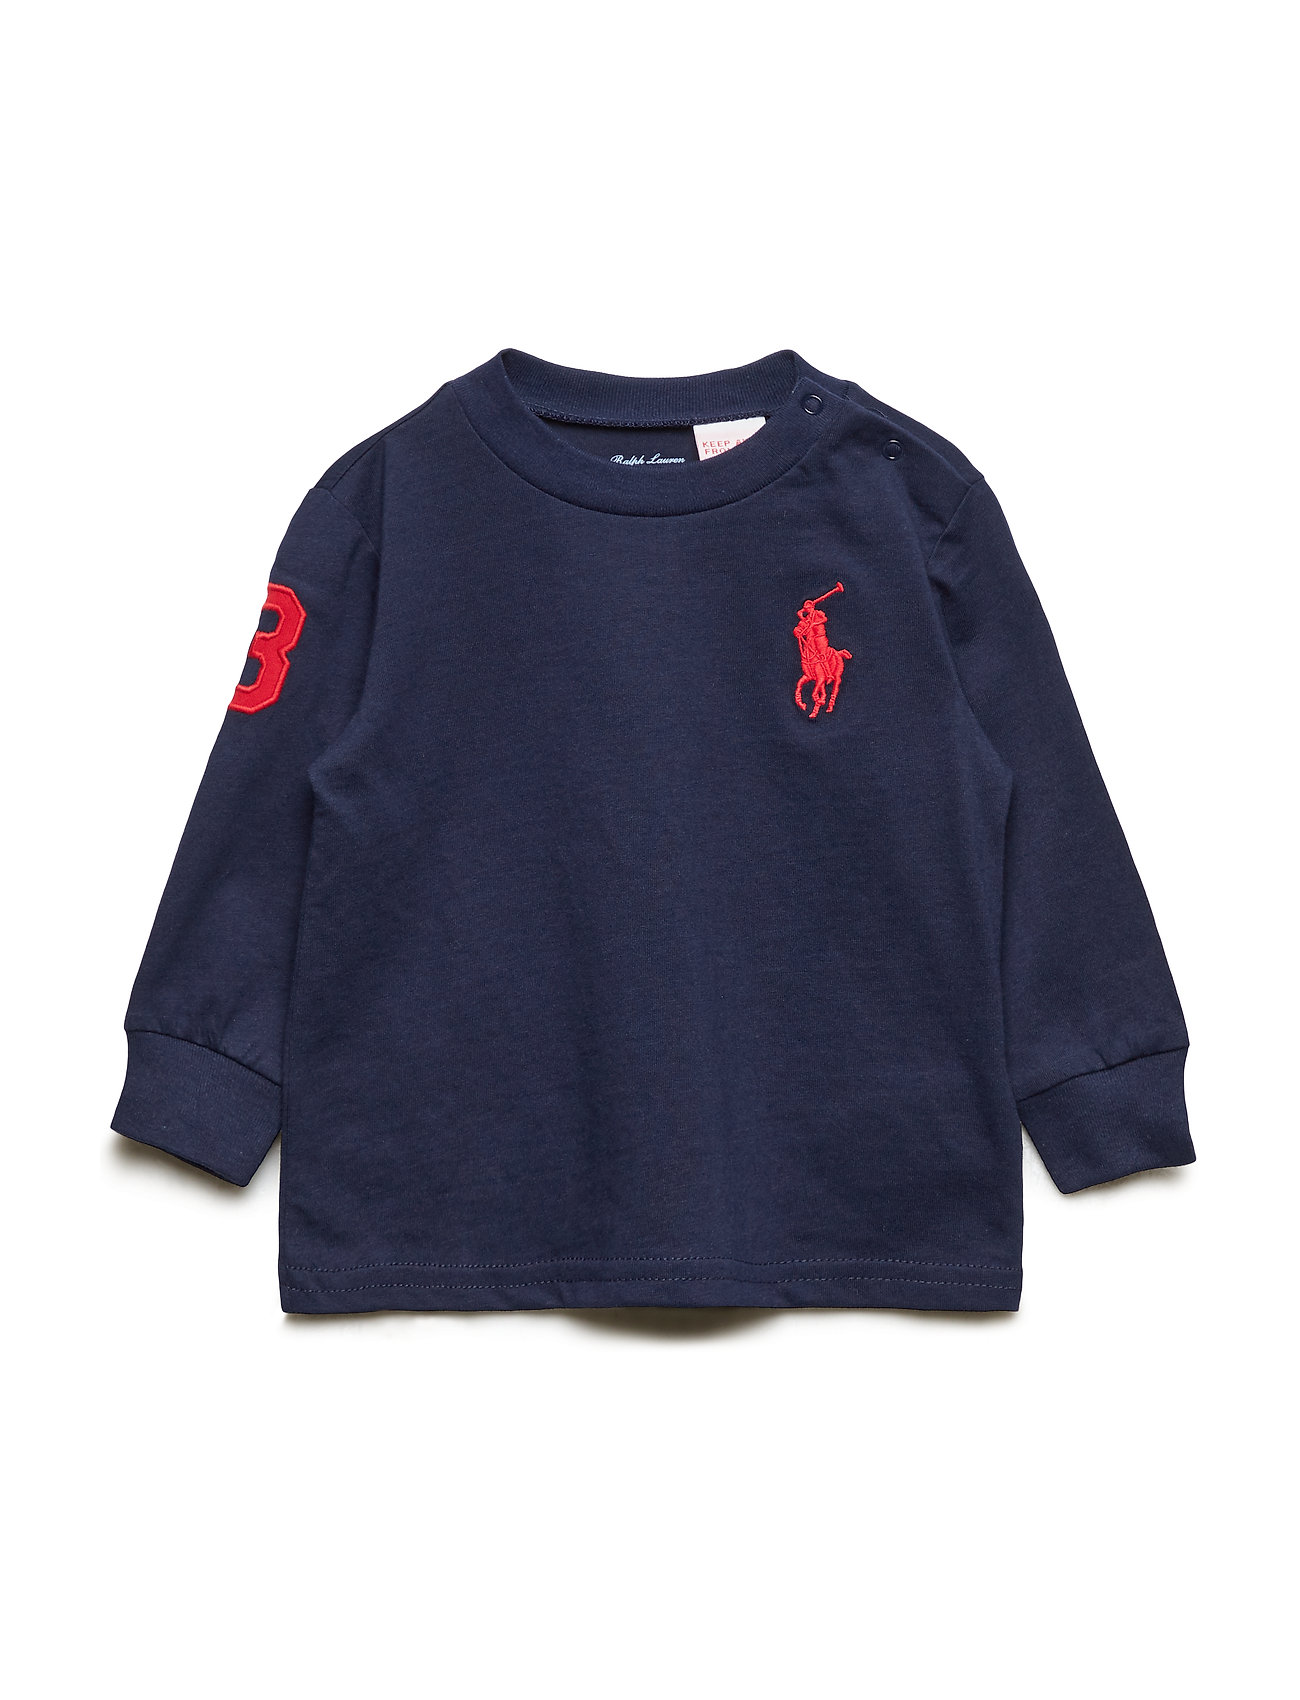 Ralph Lauren Baby Cotton Jersey T-Shirt - FRENCH NAVY